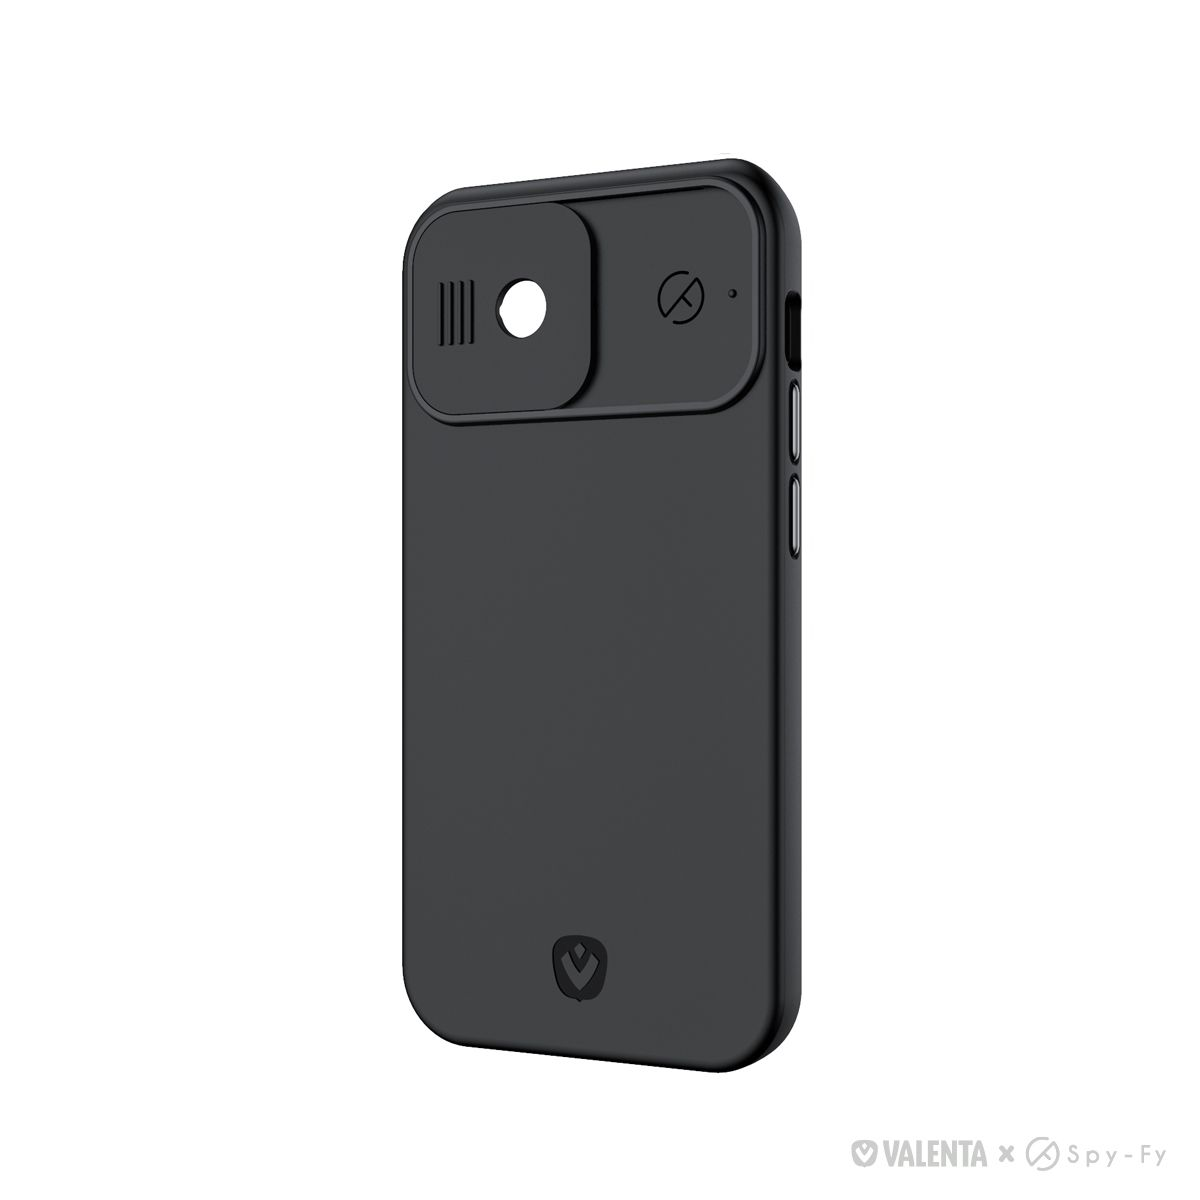 valenta x spyfy privacy cover black iphone 12 with camera covers front rear